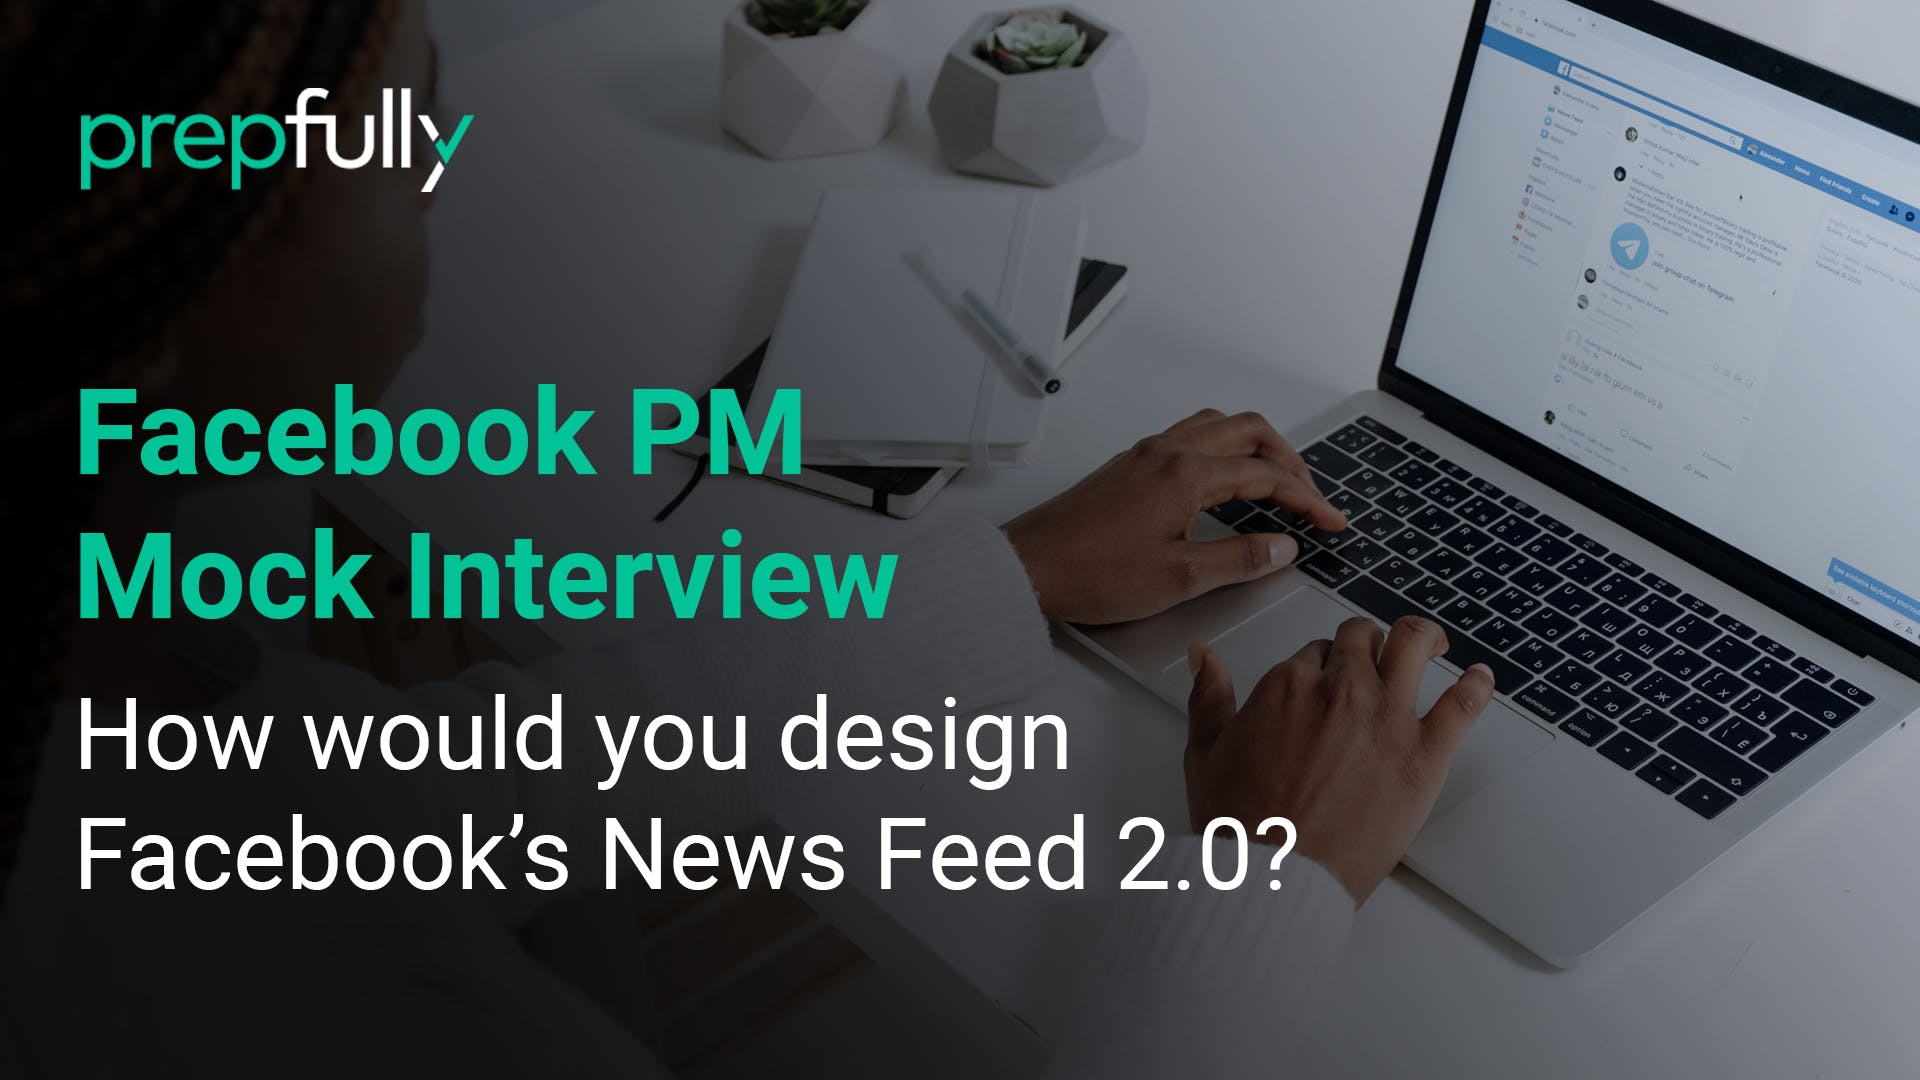 Facebook-PM-Interview-How-would-you-design-Facebook's-News-Feed-2.0